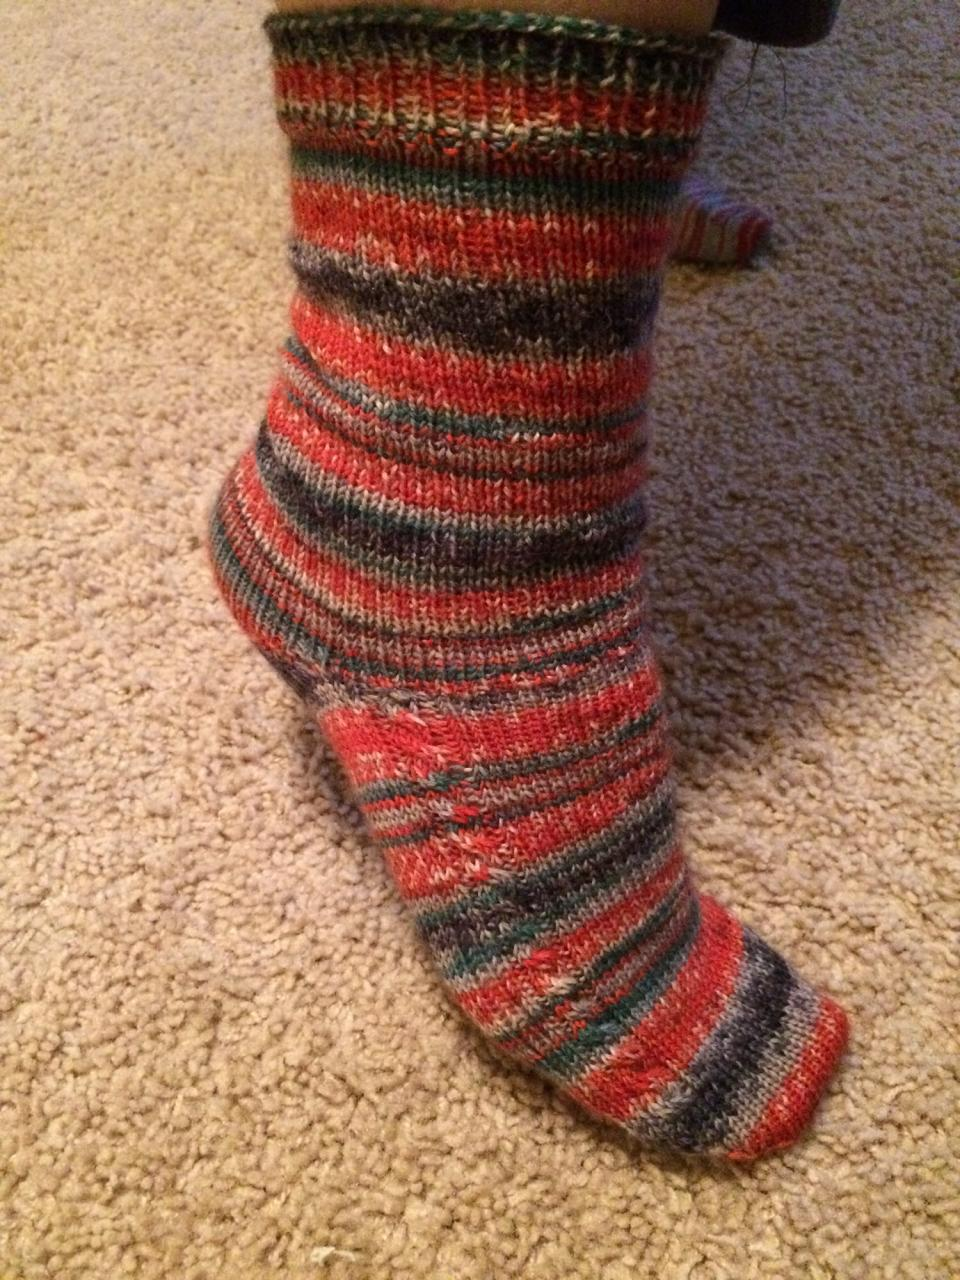 Red socks created by Elizabeth Hamm